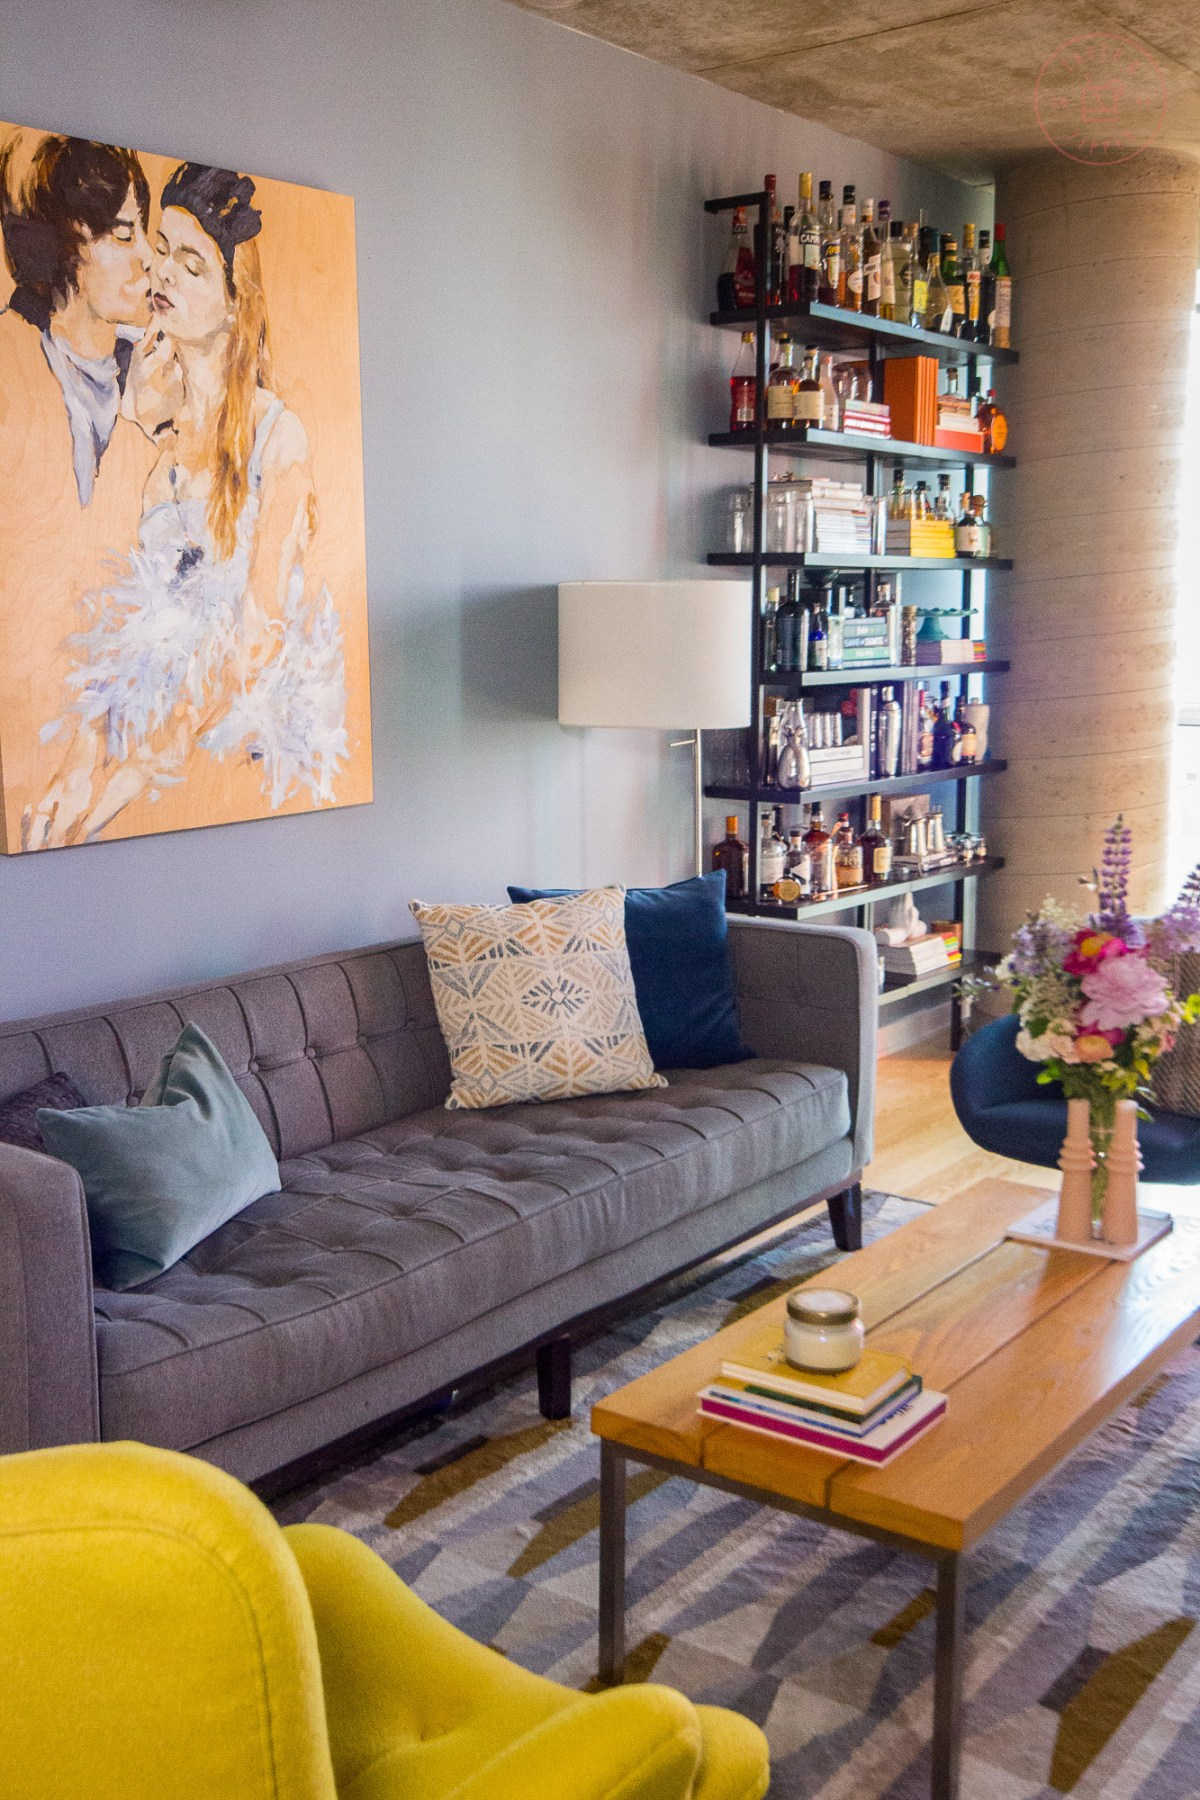 Living Room Reveal | Taste and Tipple